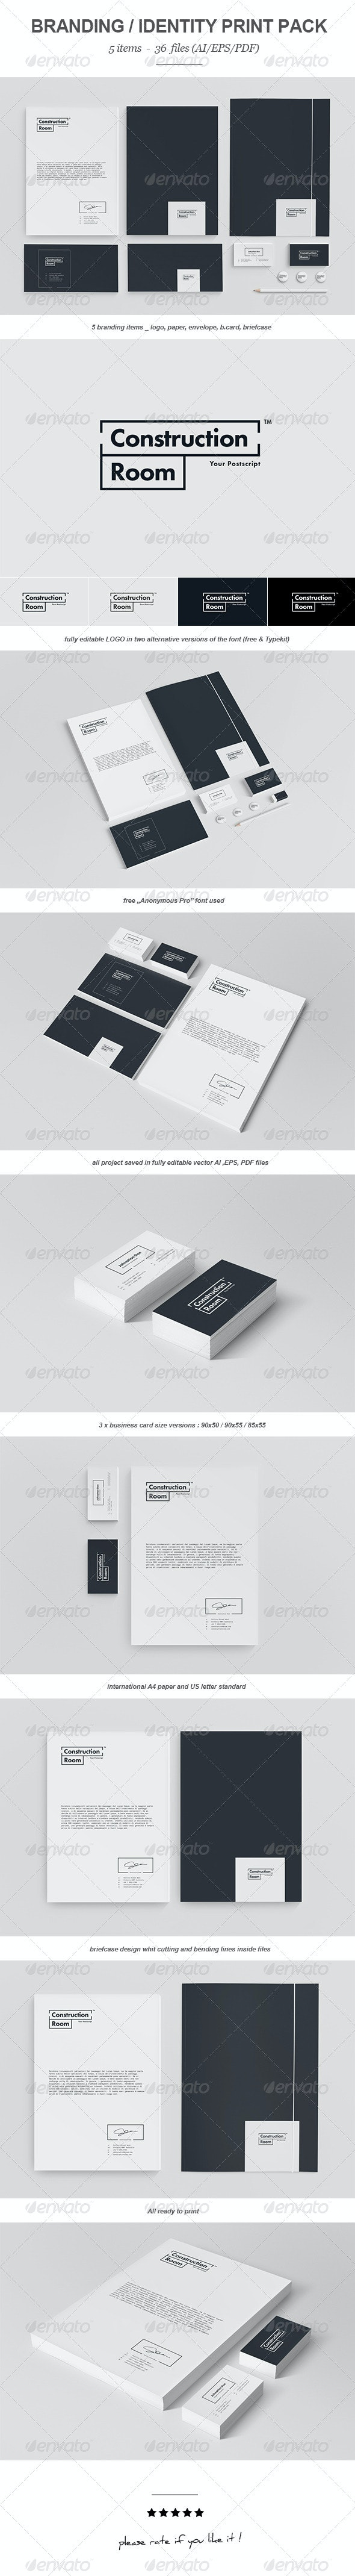 Construction Room Branding Print Pack - Stationery Print Templates